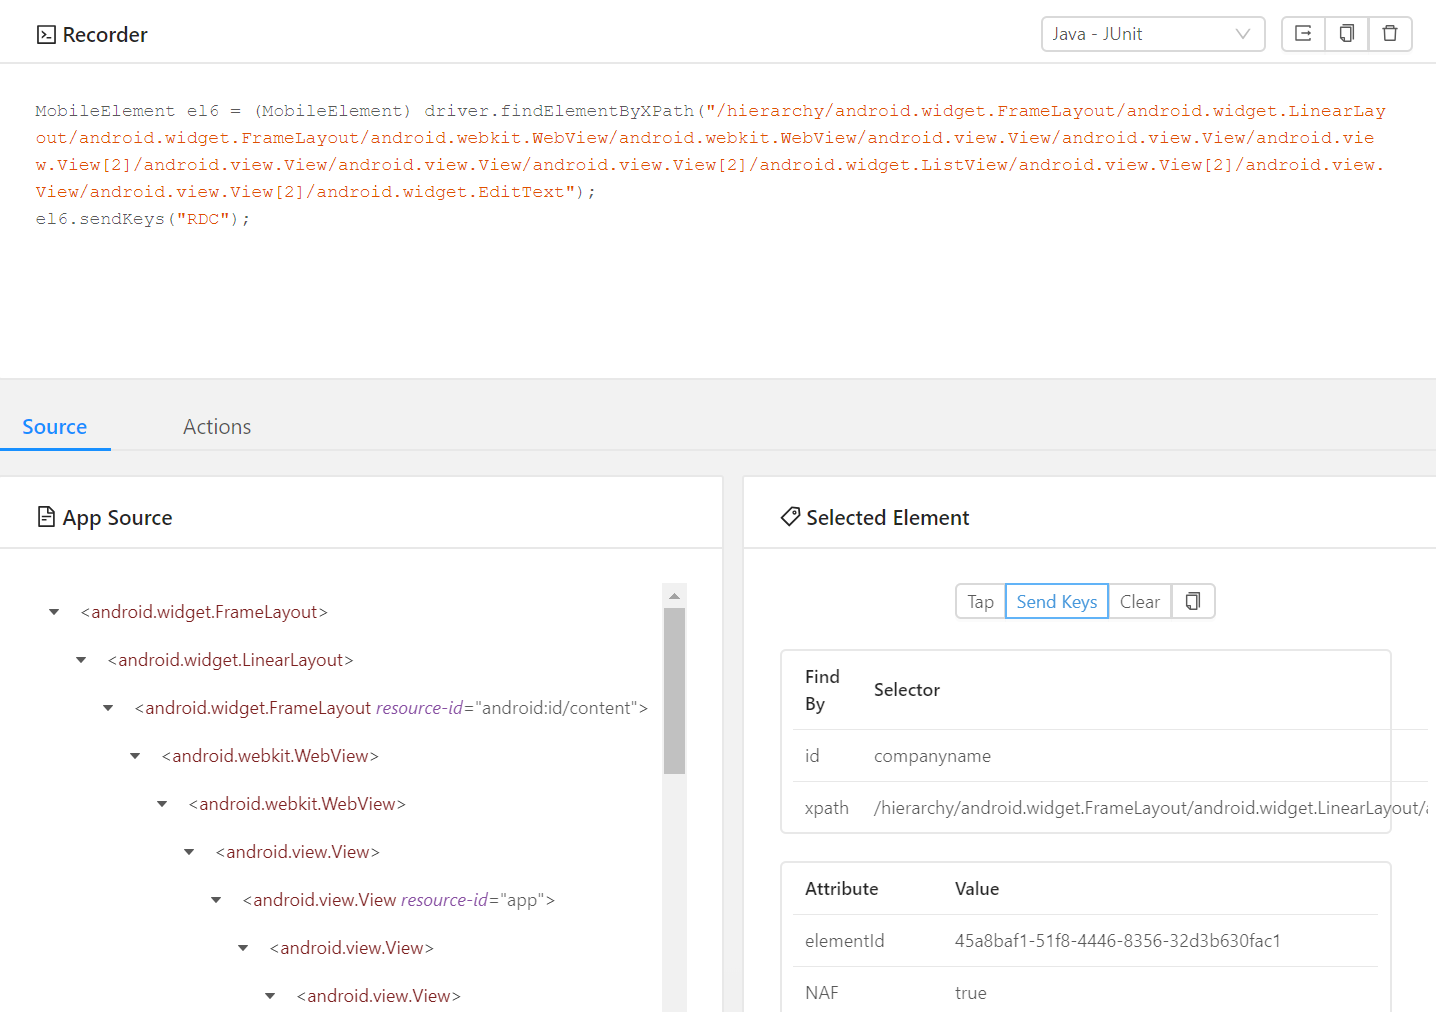 Appium Desktop Recorder uses XPath instead of Id - Issues/Bugs